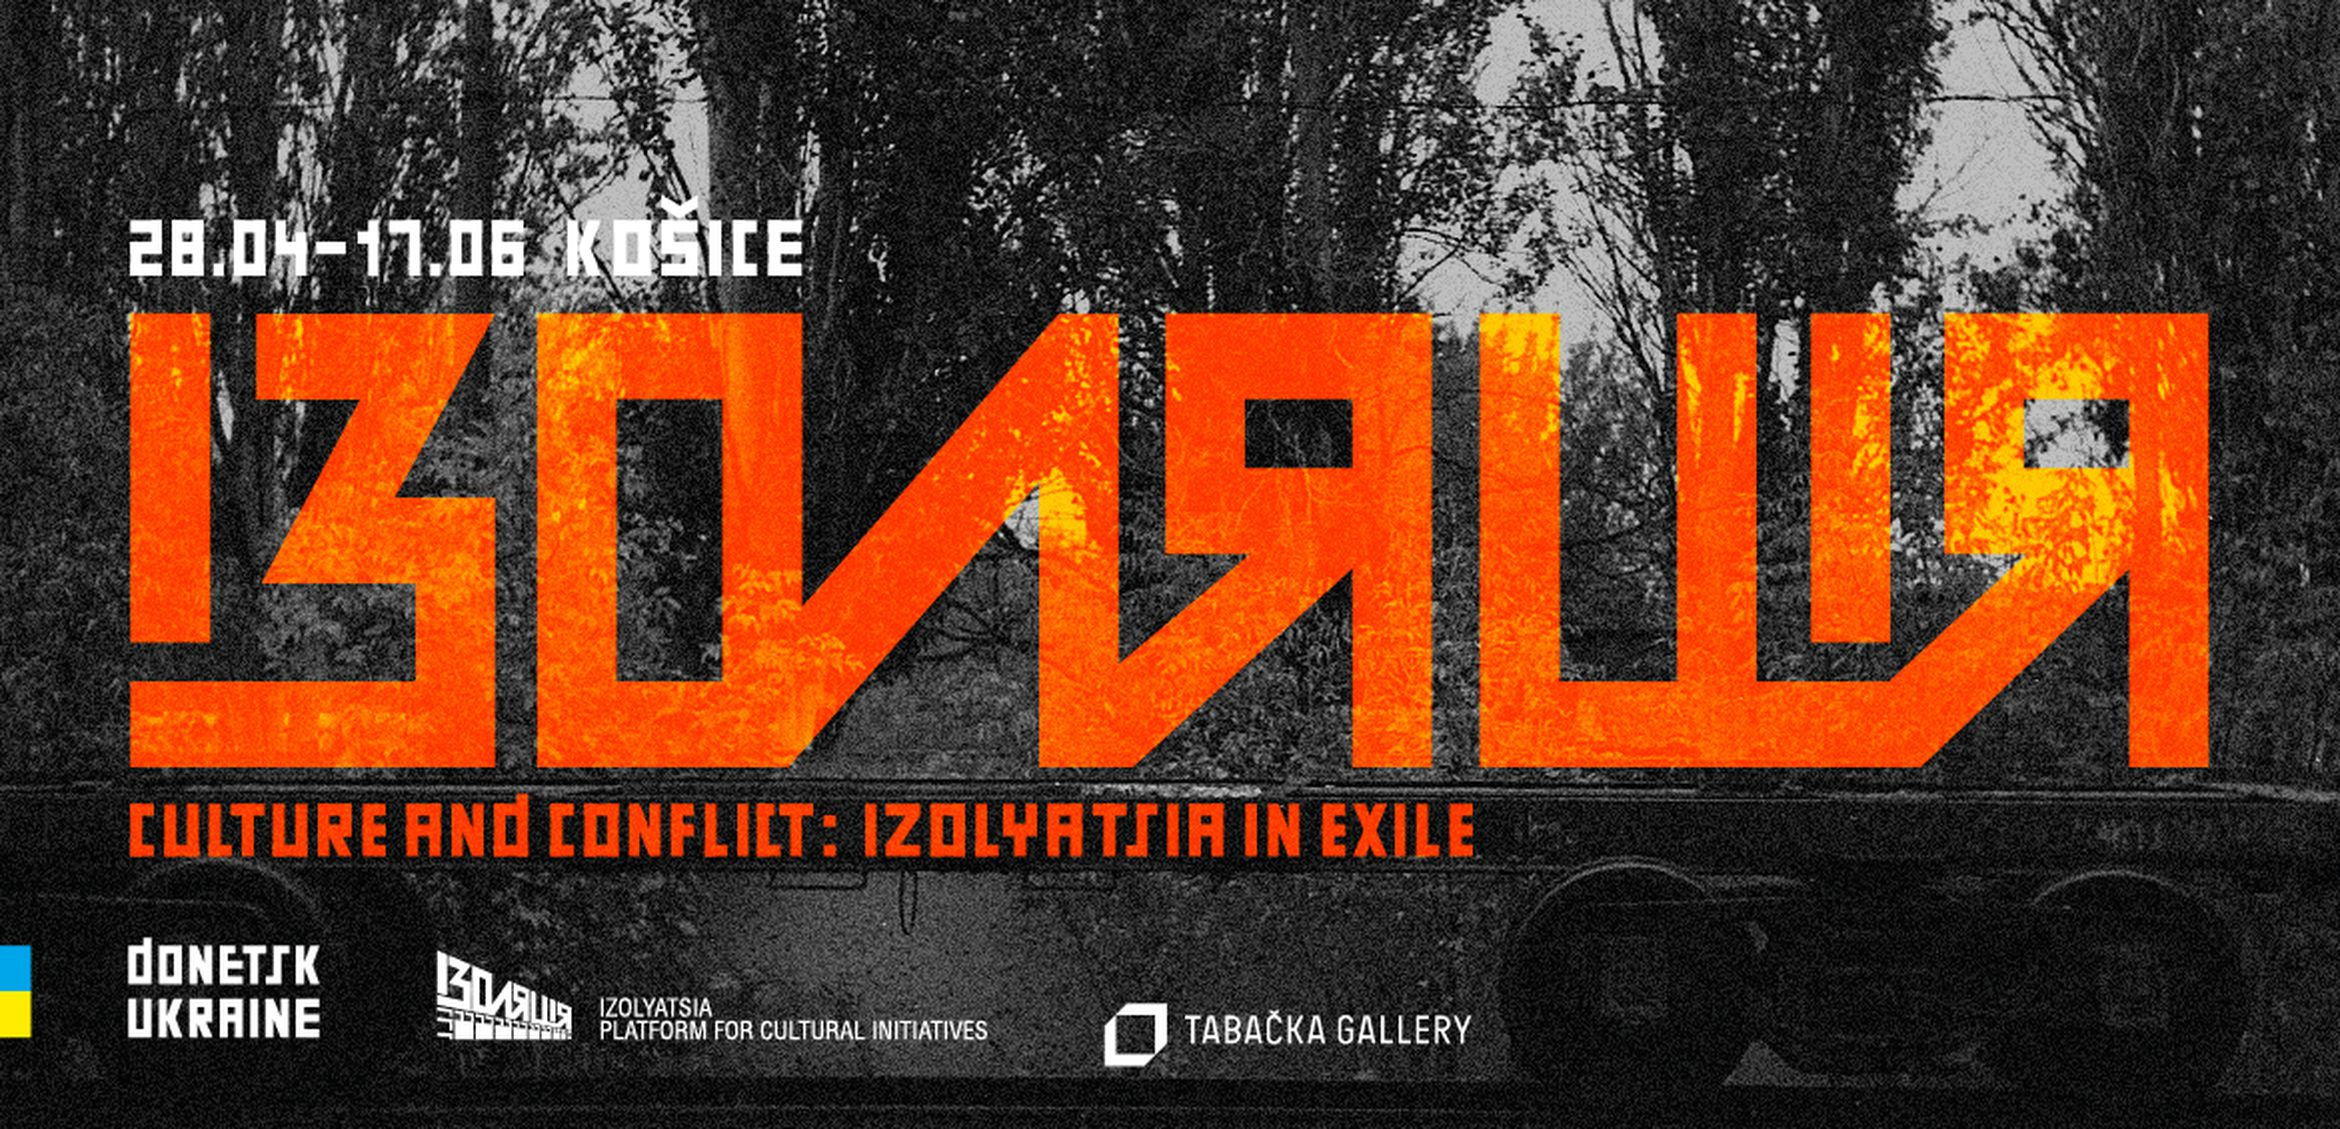 Culture and Conflict exhibition in Slovakia